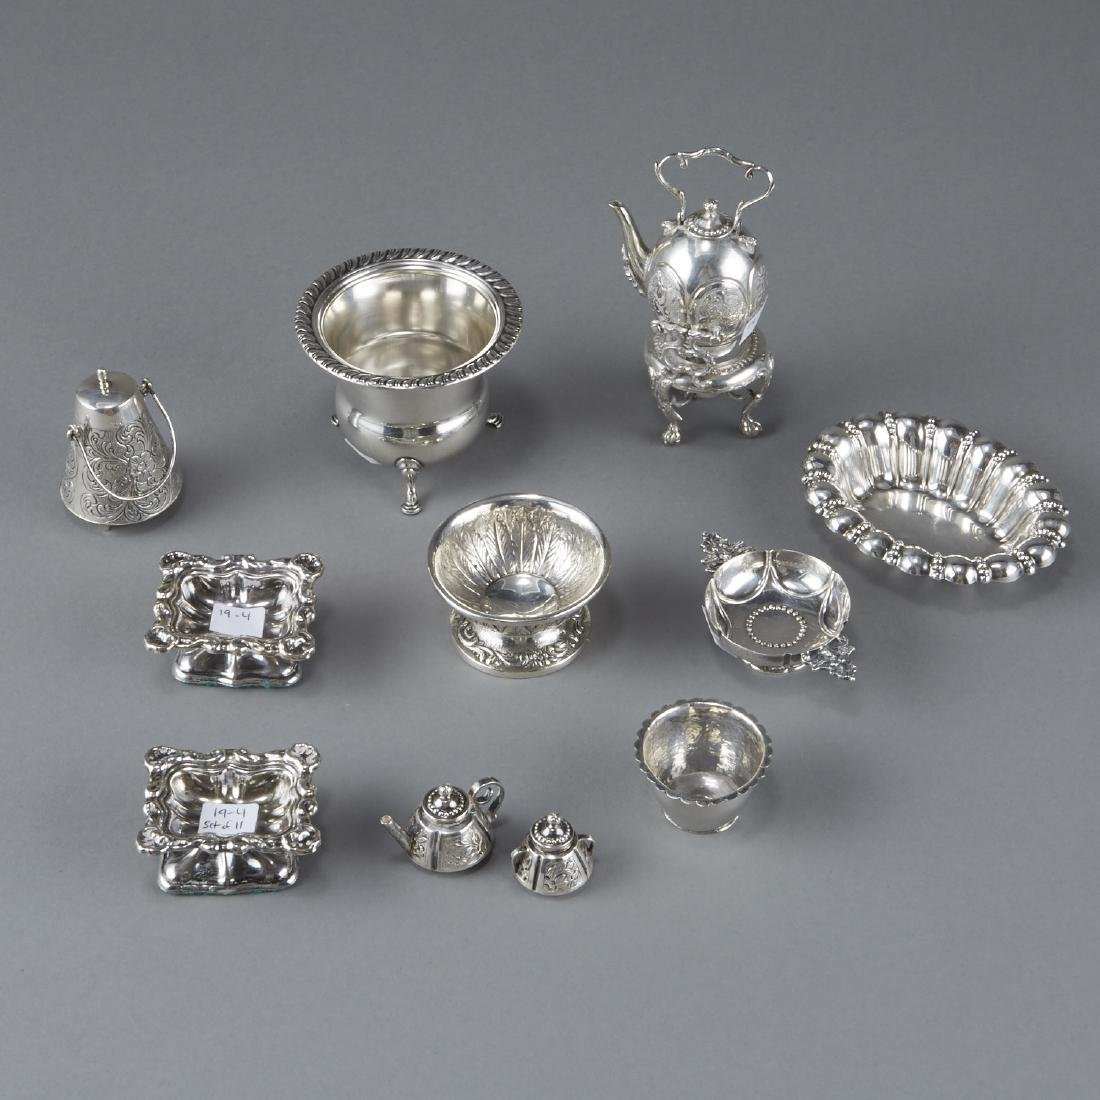 Group of Miniature Sterling Silver Tea Service